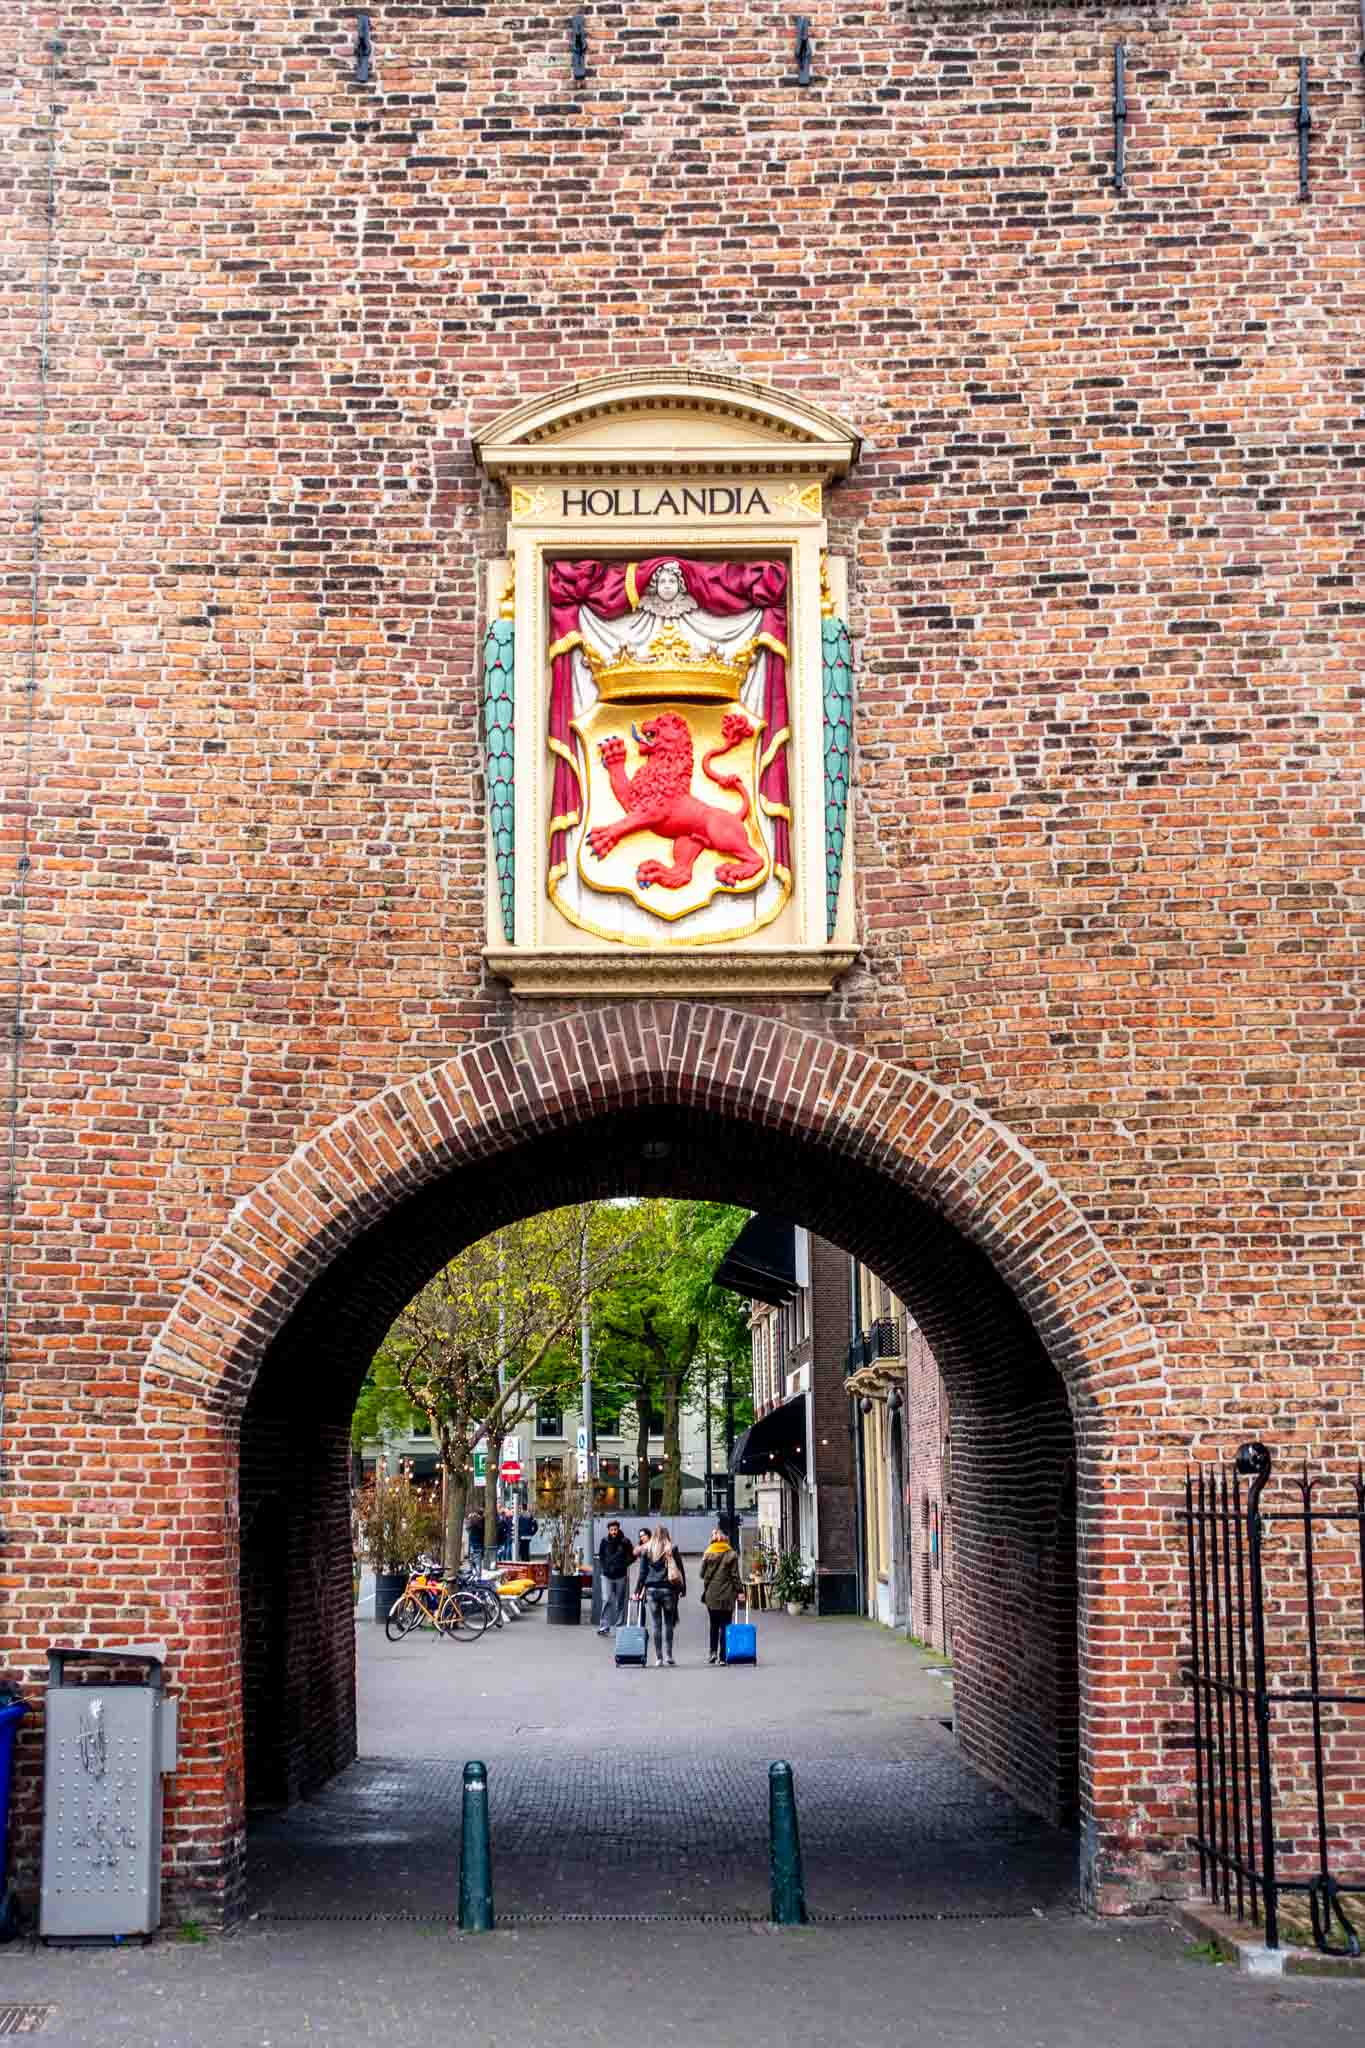 "Coat of arms and sign for ""Hollandia"" hanging over a brick city gate"